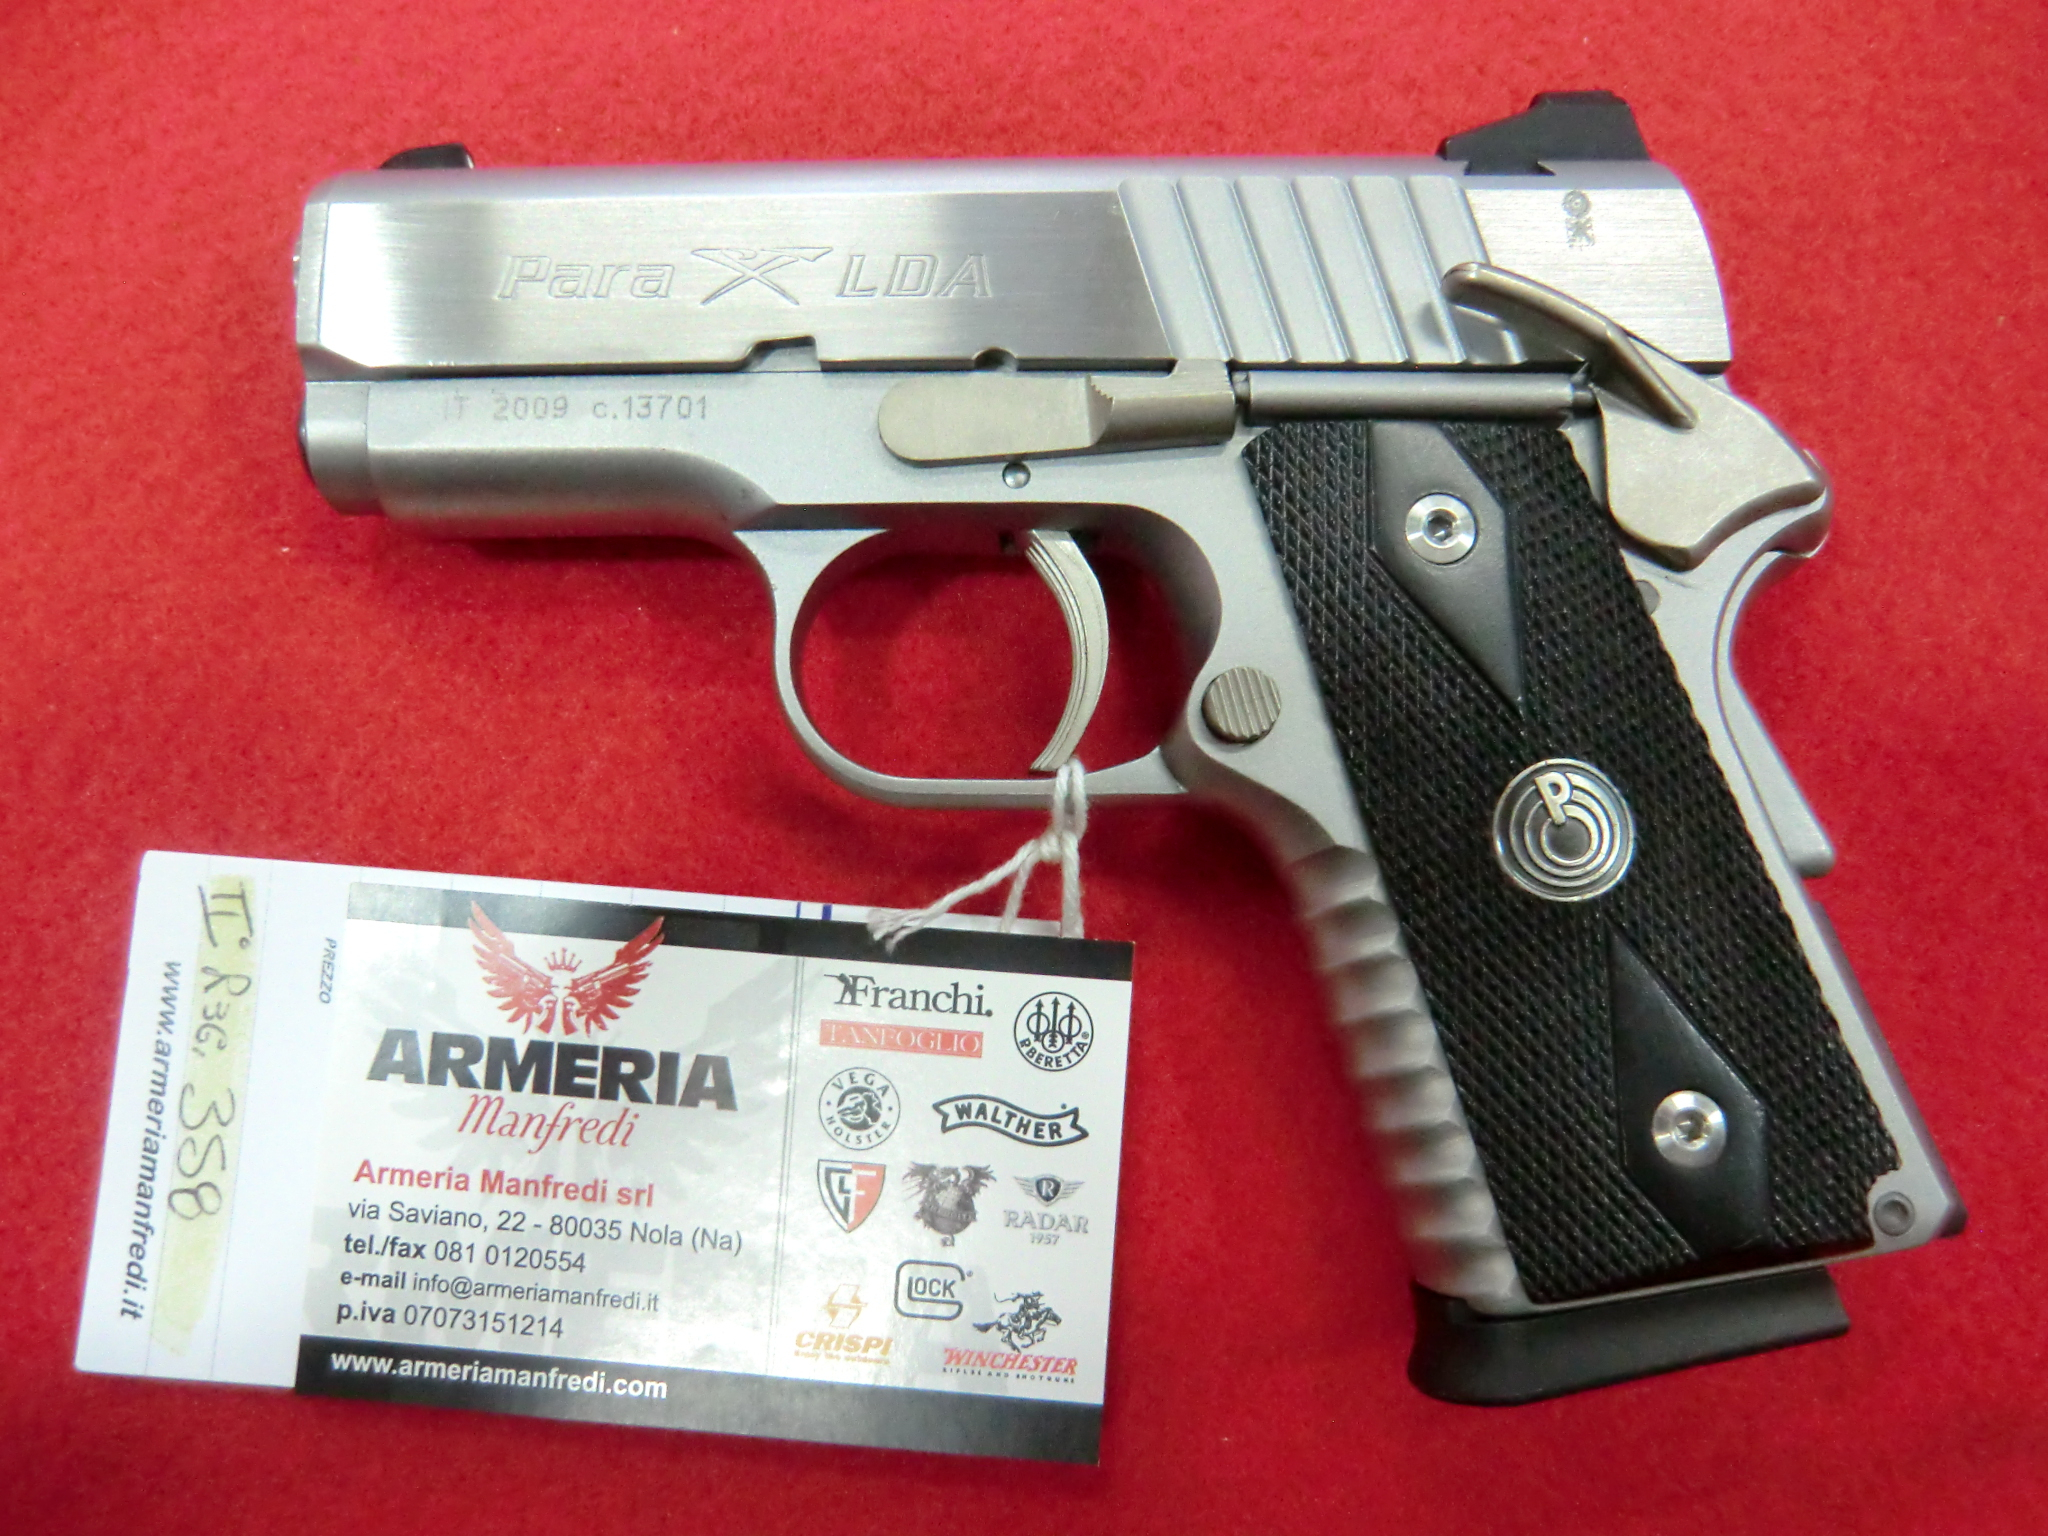 Para Ordnance modello Carry calibro 45 ACP